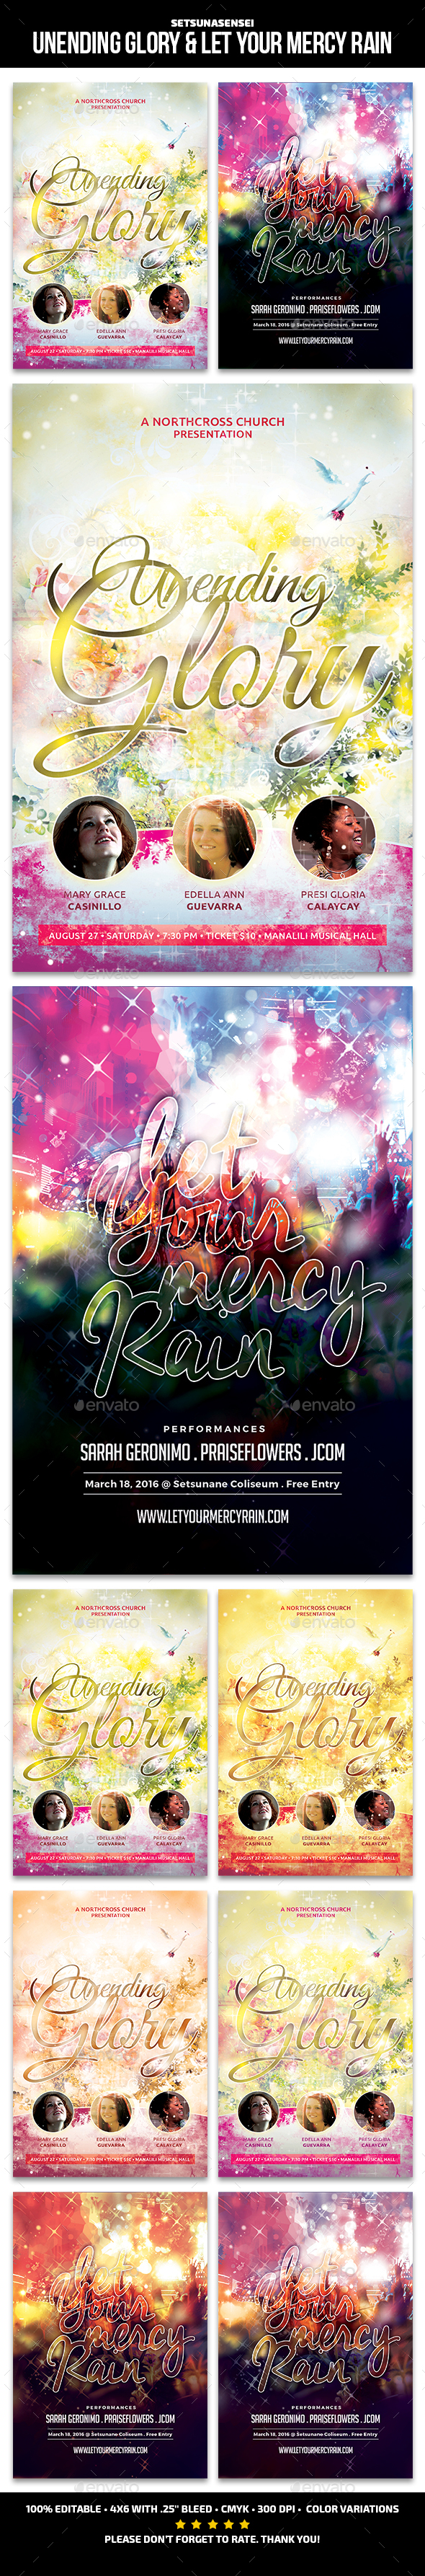 Unending Glory and Let Your Mercy Rain Church Flyers - Commerce Flyers